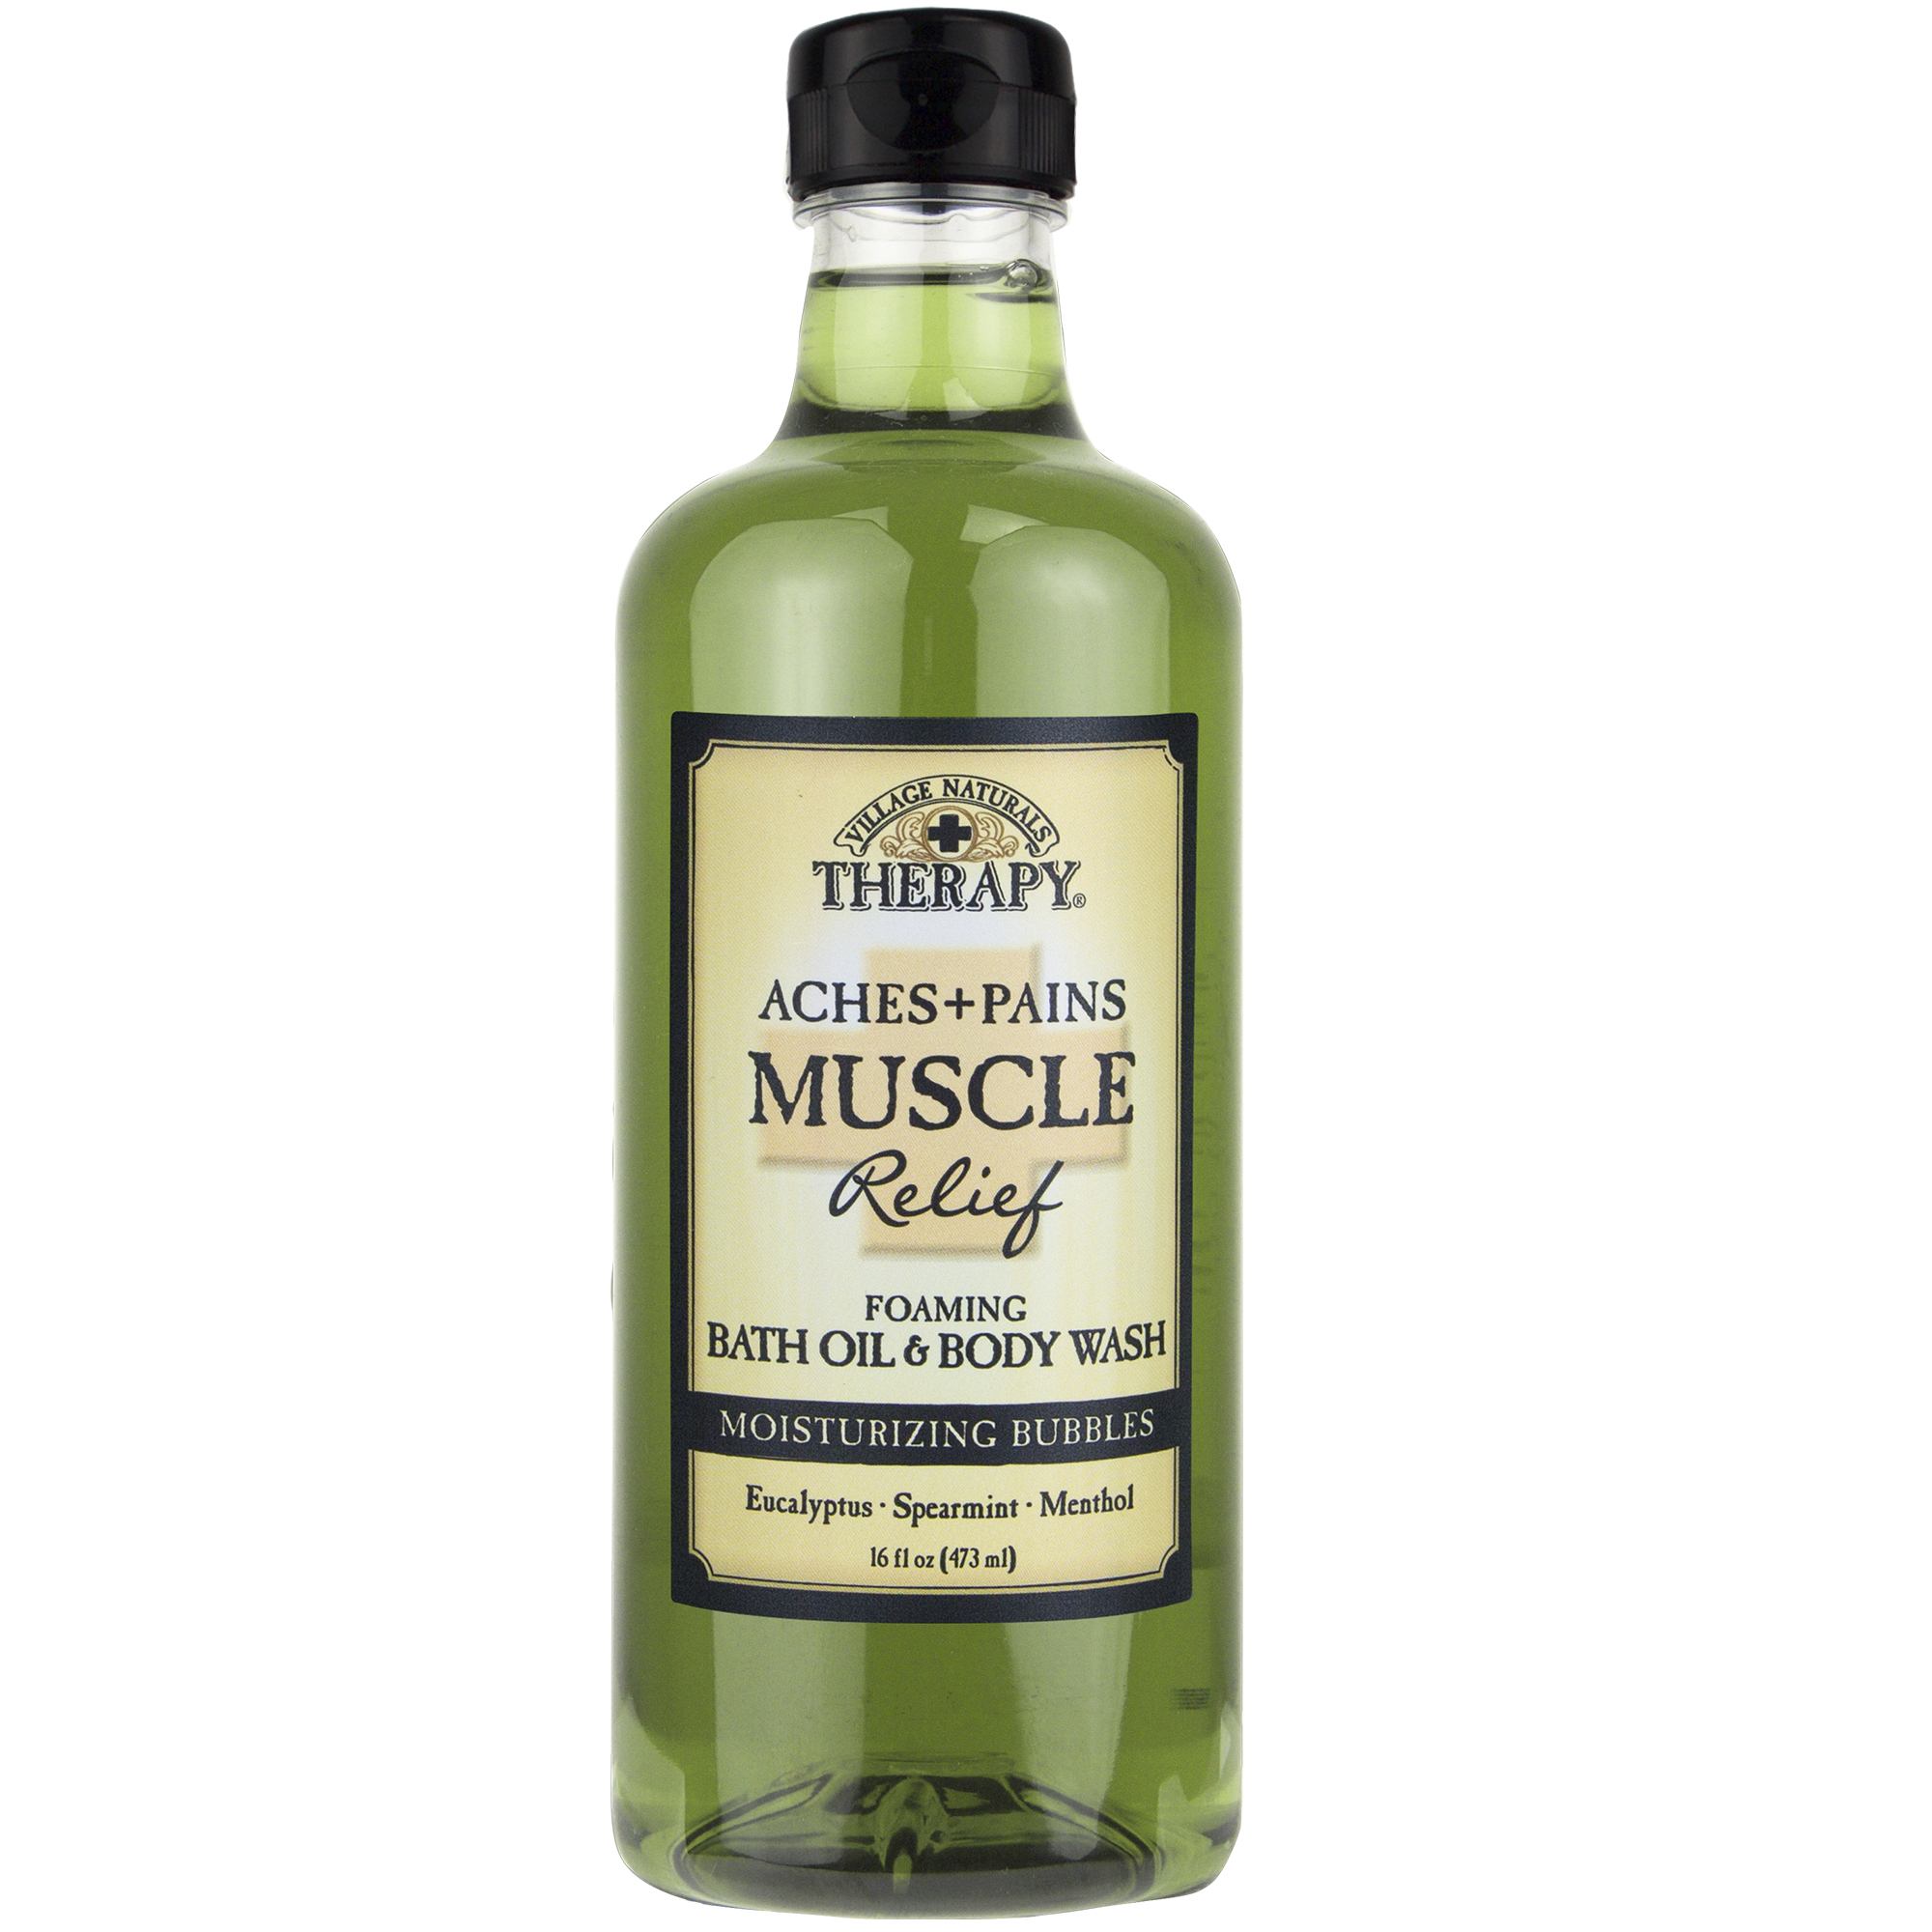 Village Naturals Therapy, Aches & Pains Muscle Relief Foaming Bath Oil & Body Wash